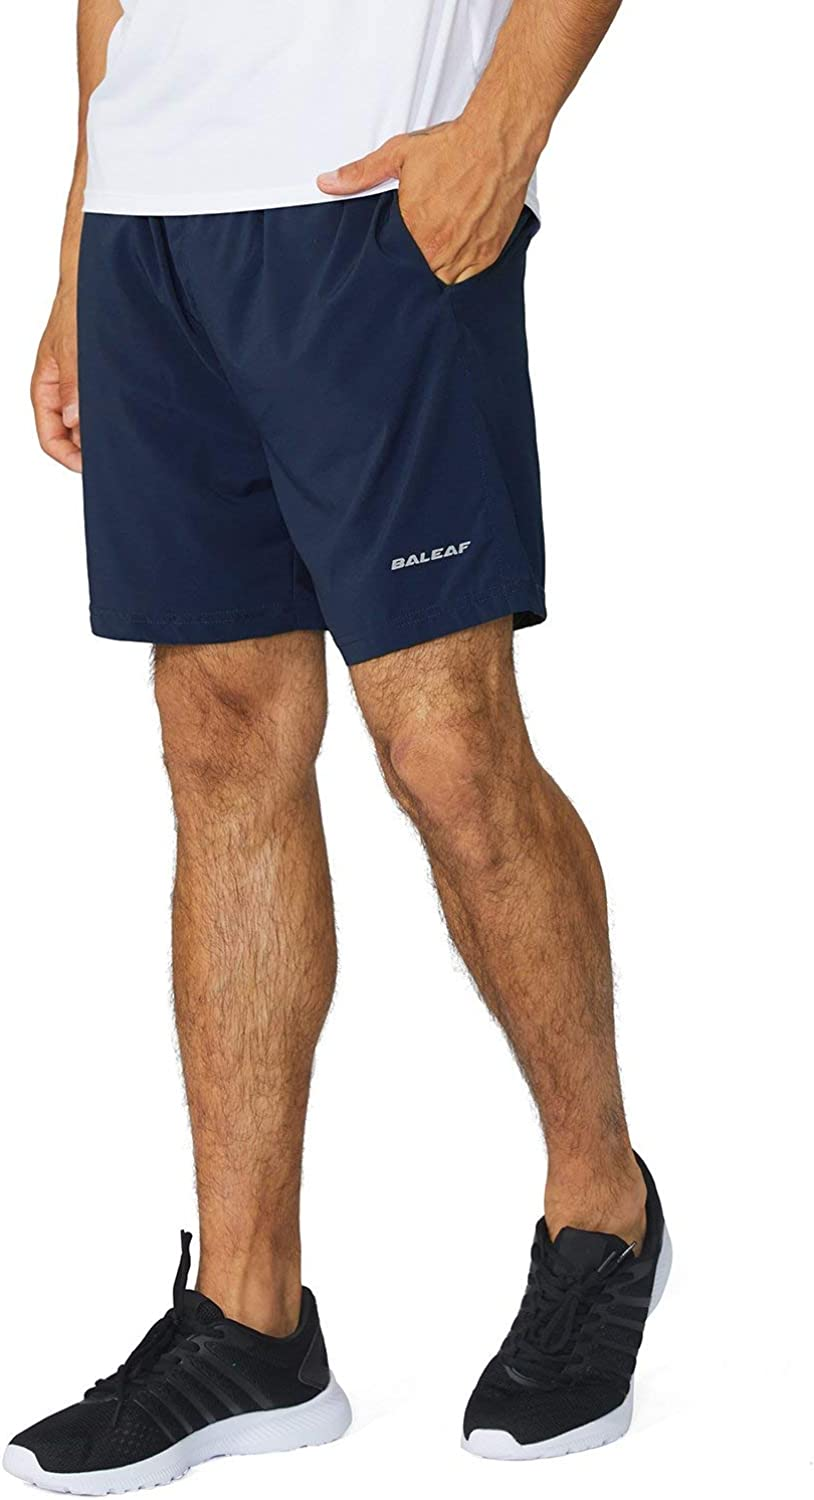 BALEAF Men's Spring new work one after another 5 Attention brand Inches Running Athletic Shorts L Pocket Zipper No